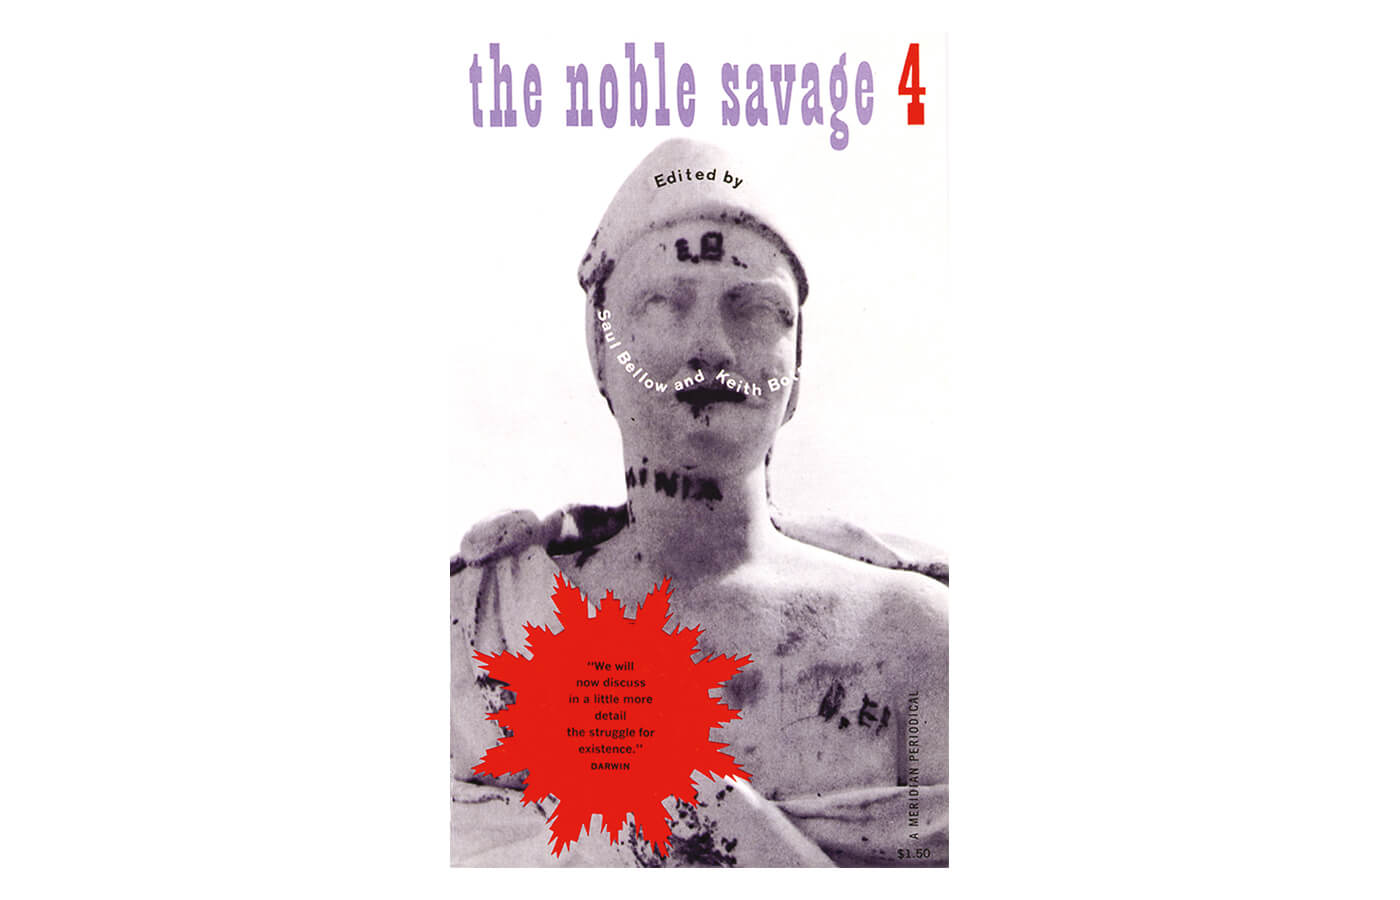 The Noble Savage 4